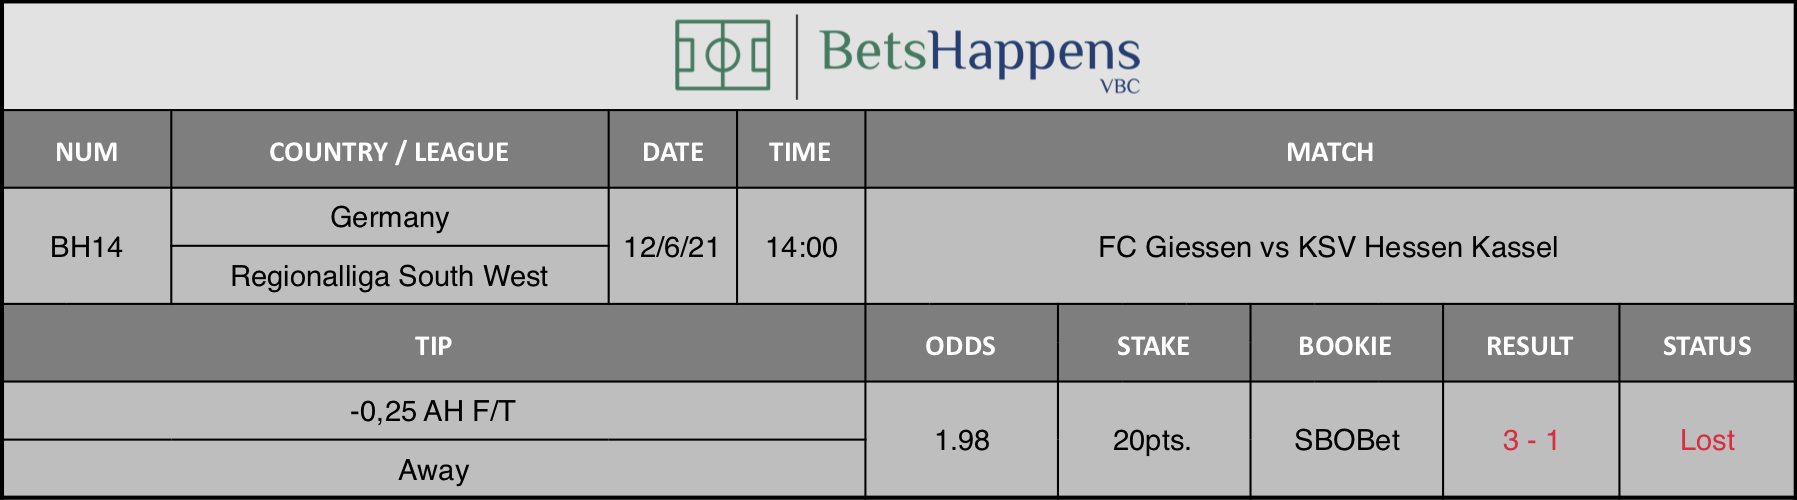 Results of our tip for the FC Giessen vs KSV Hessen Kassel Match -0,25 AH F/T Away is recommended.